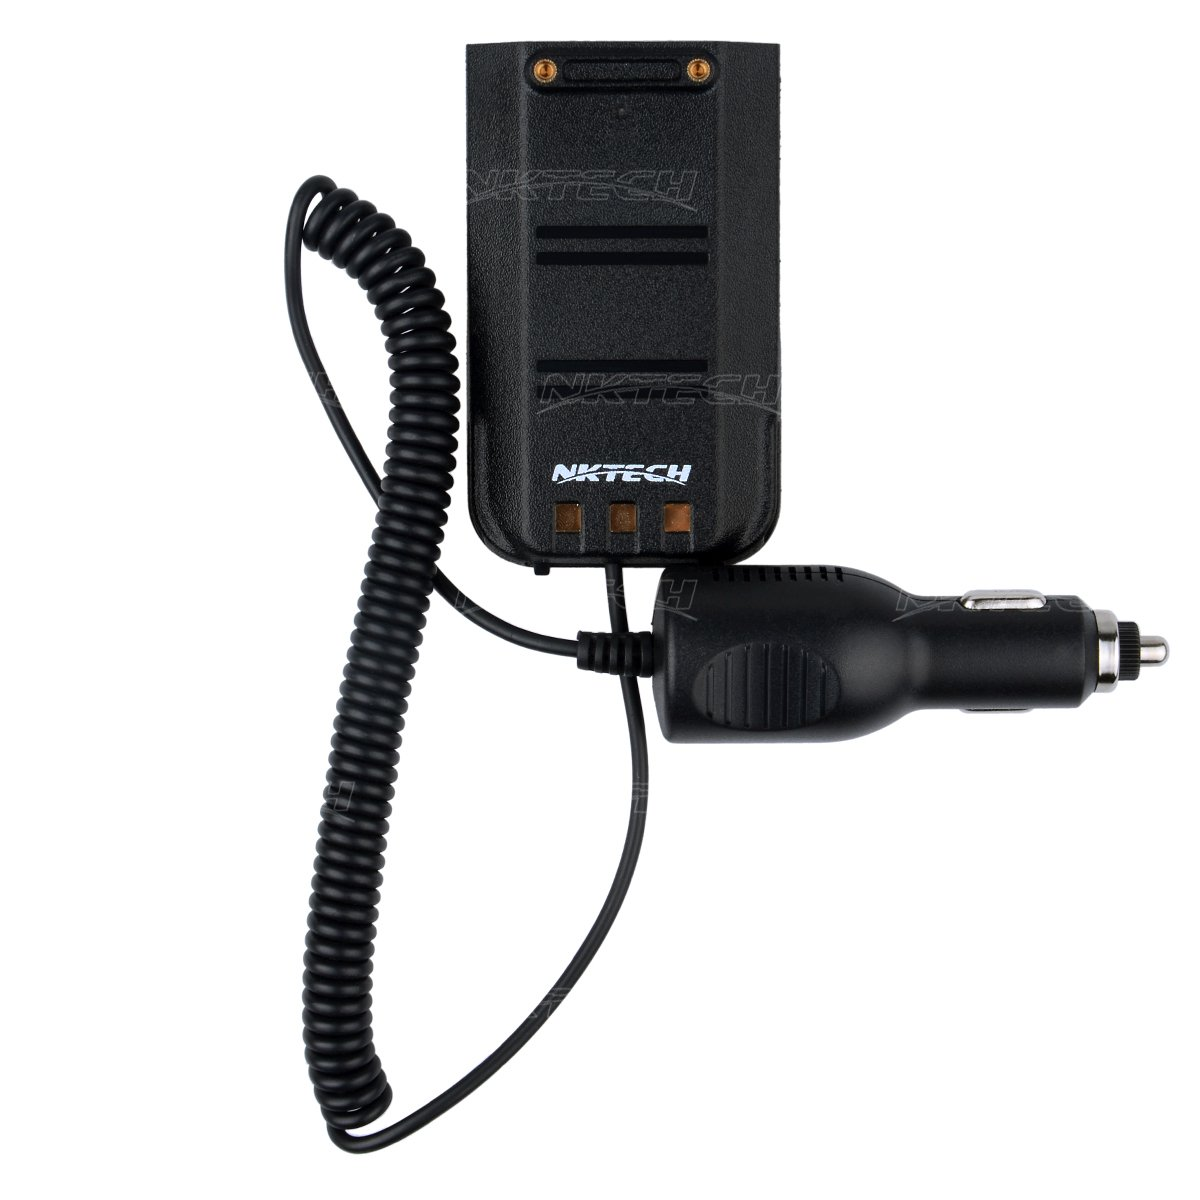 NKTECH Car Charger Battery Eliminator For TYT Tytera MD-380 NKTECH MD-380U MD-380V Digital Mobile Radio DMR Two Way Radio Transceiver Pack of 20 by NKTECH (Image #3)